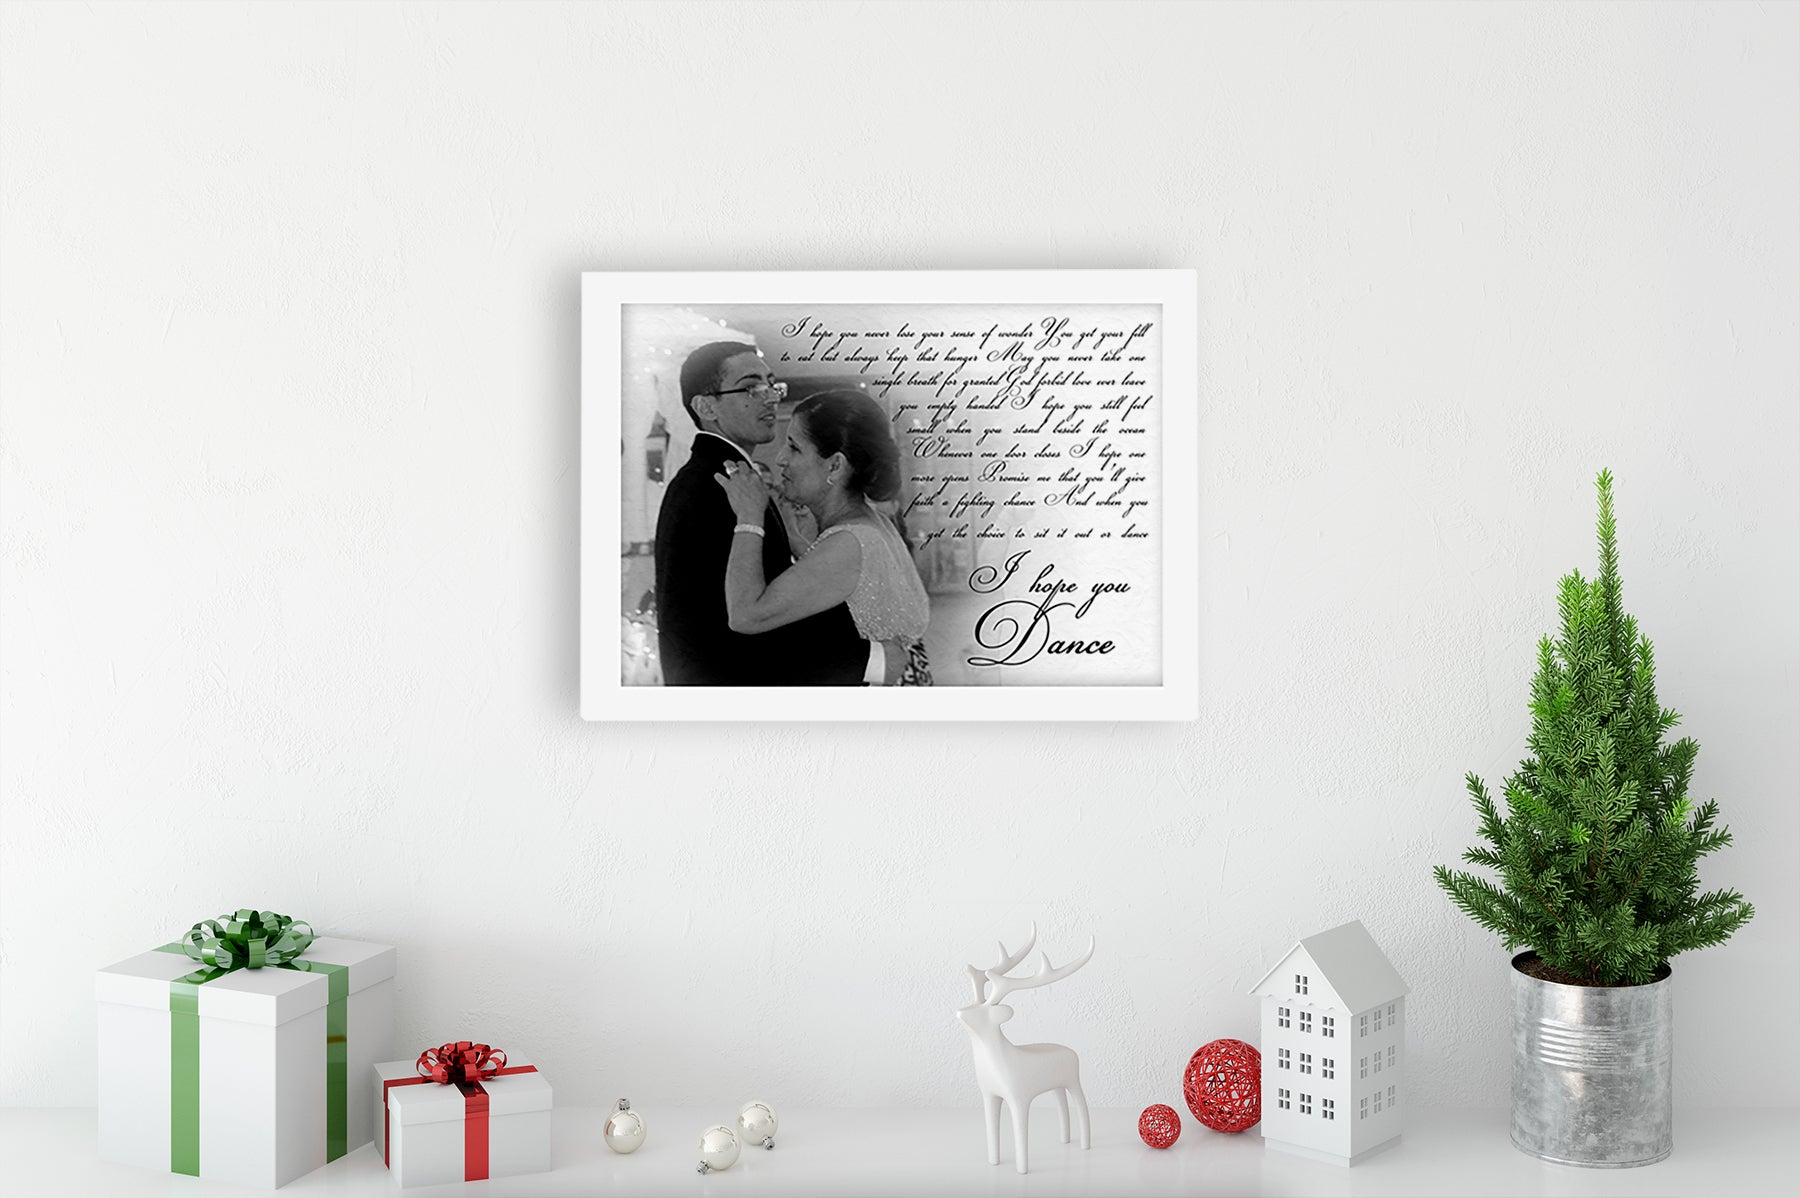 Personalized mother and son photo gift wall decor